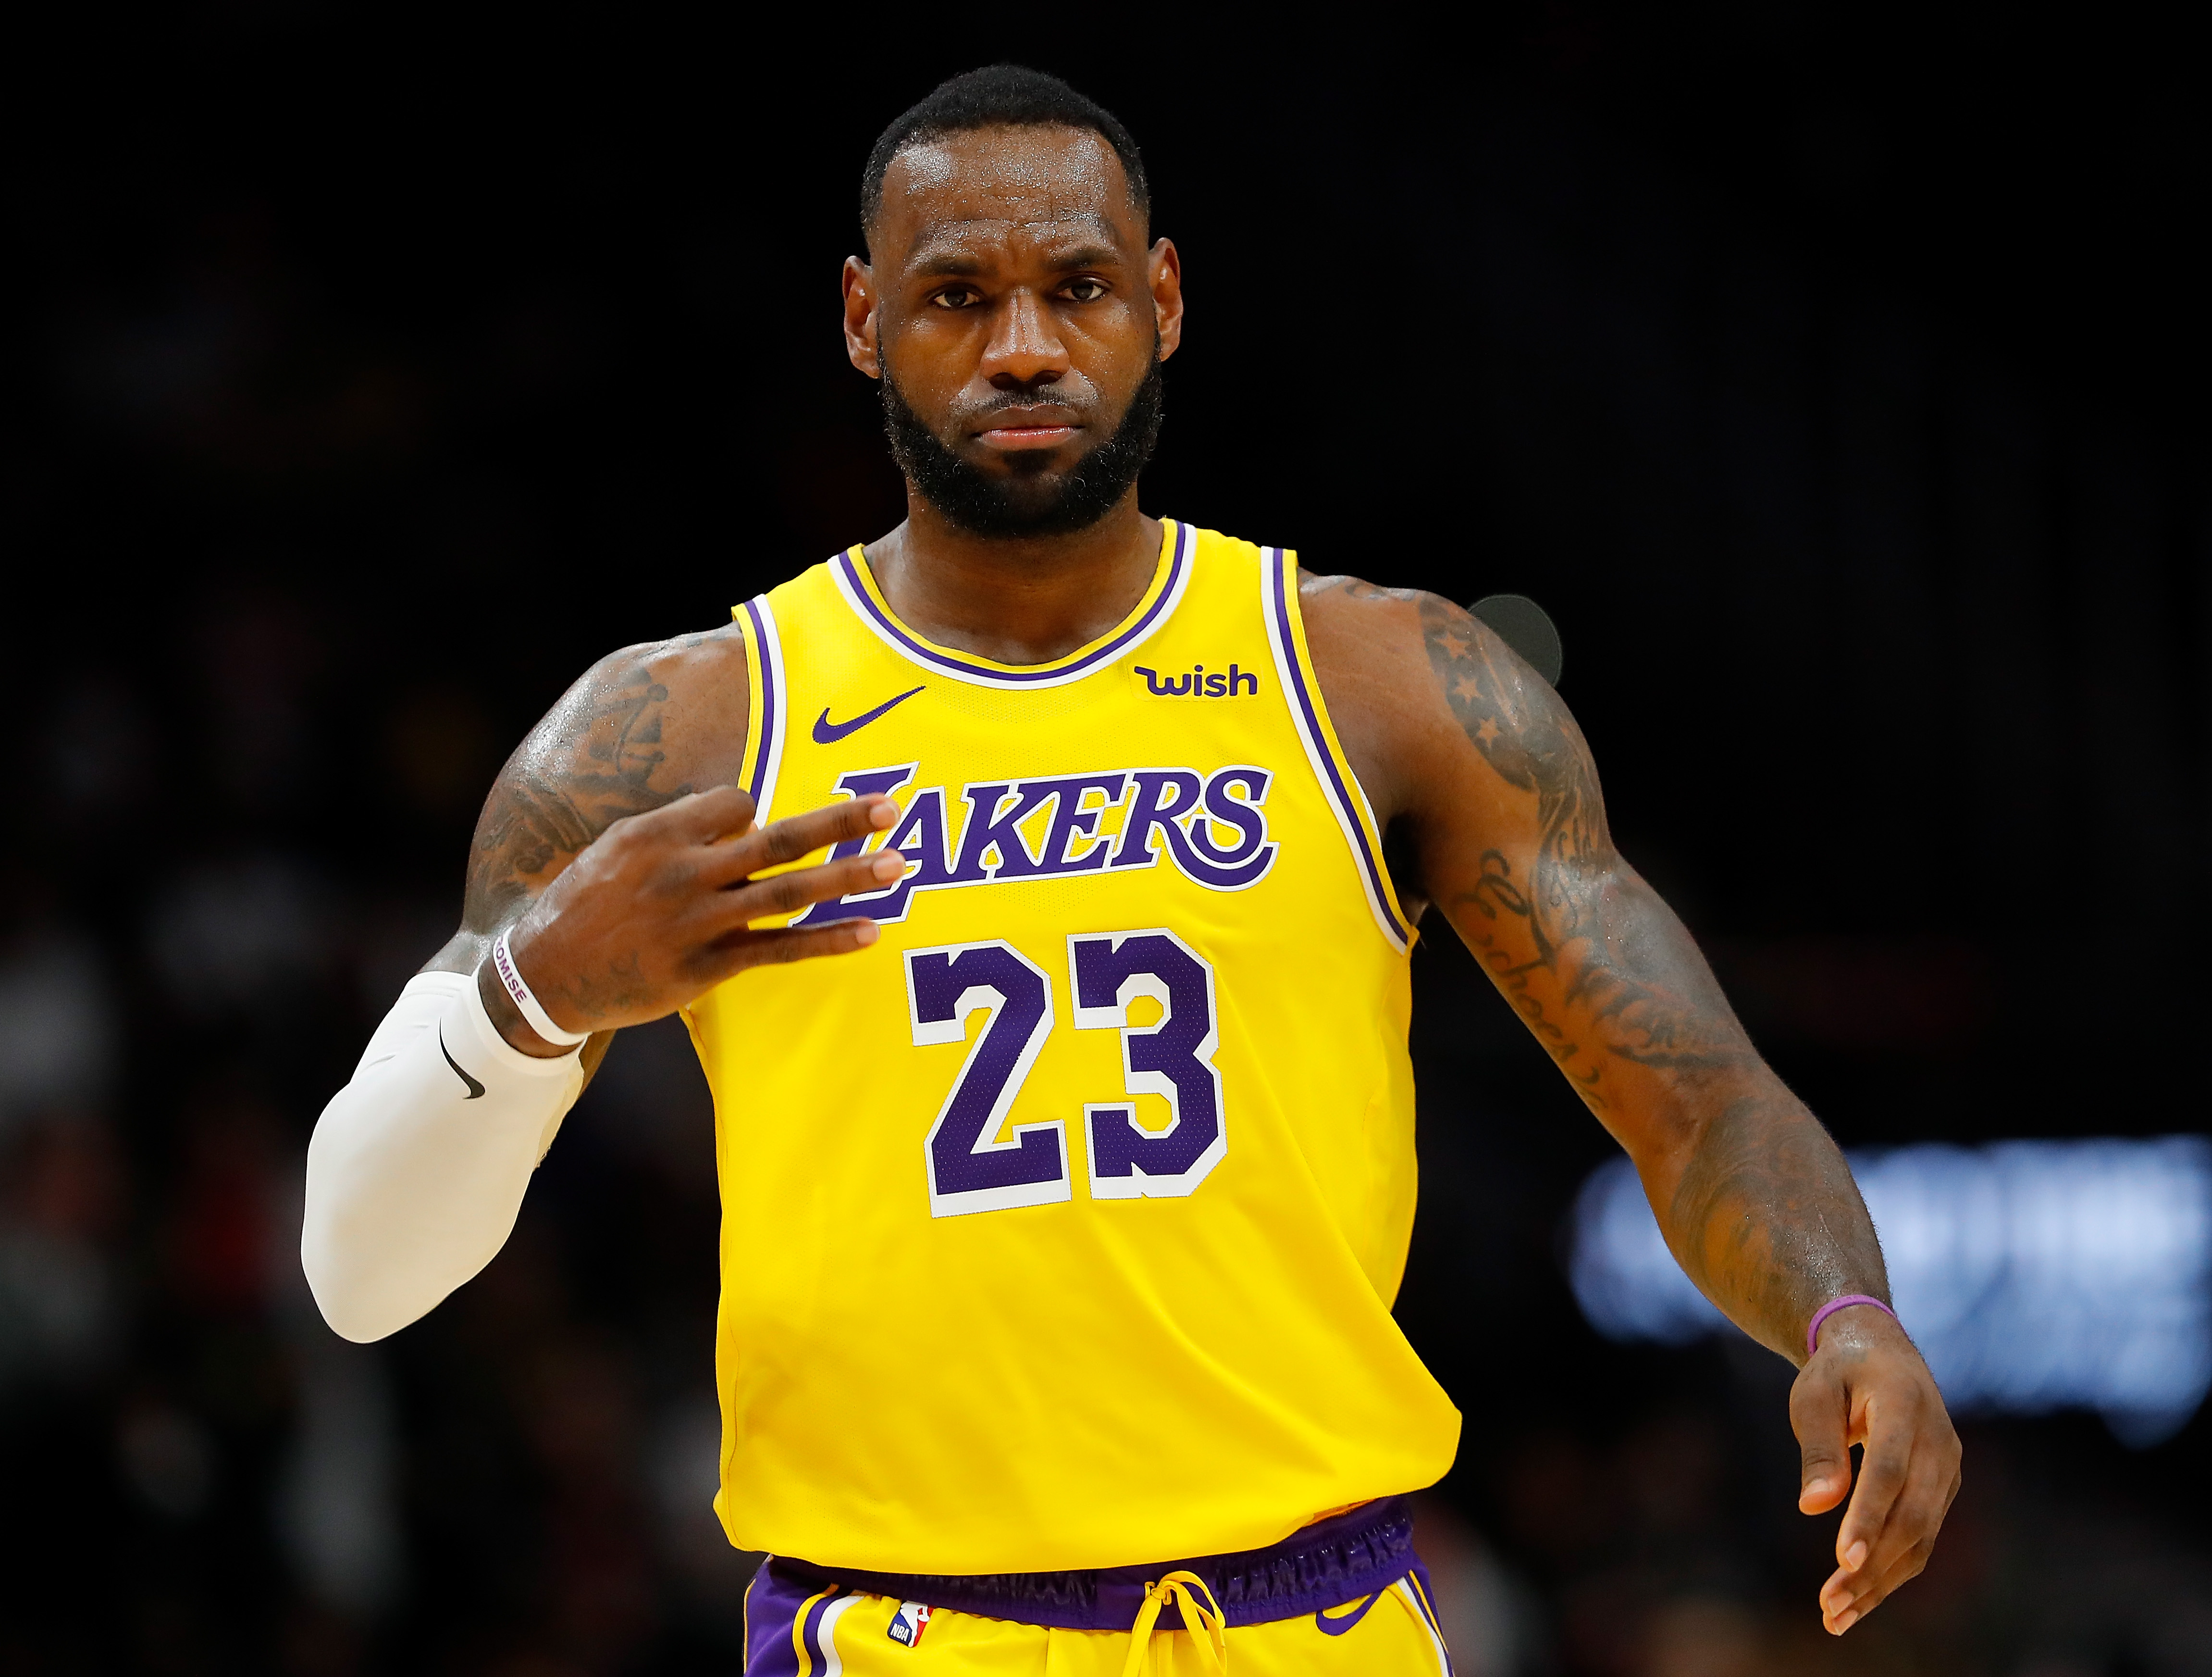 LeBron James of the Los Angeles Lakers.